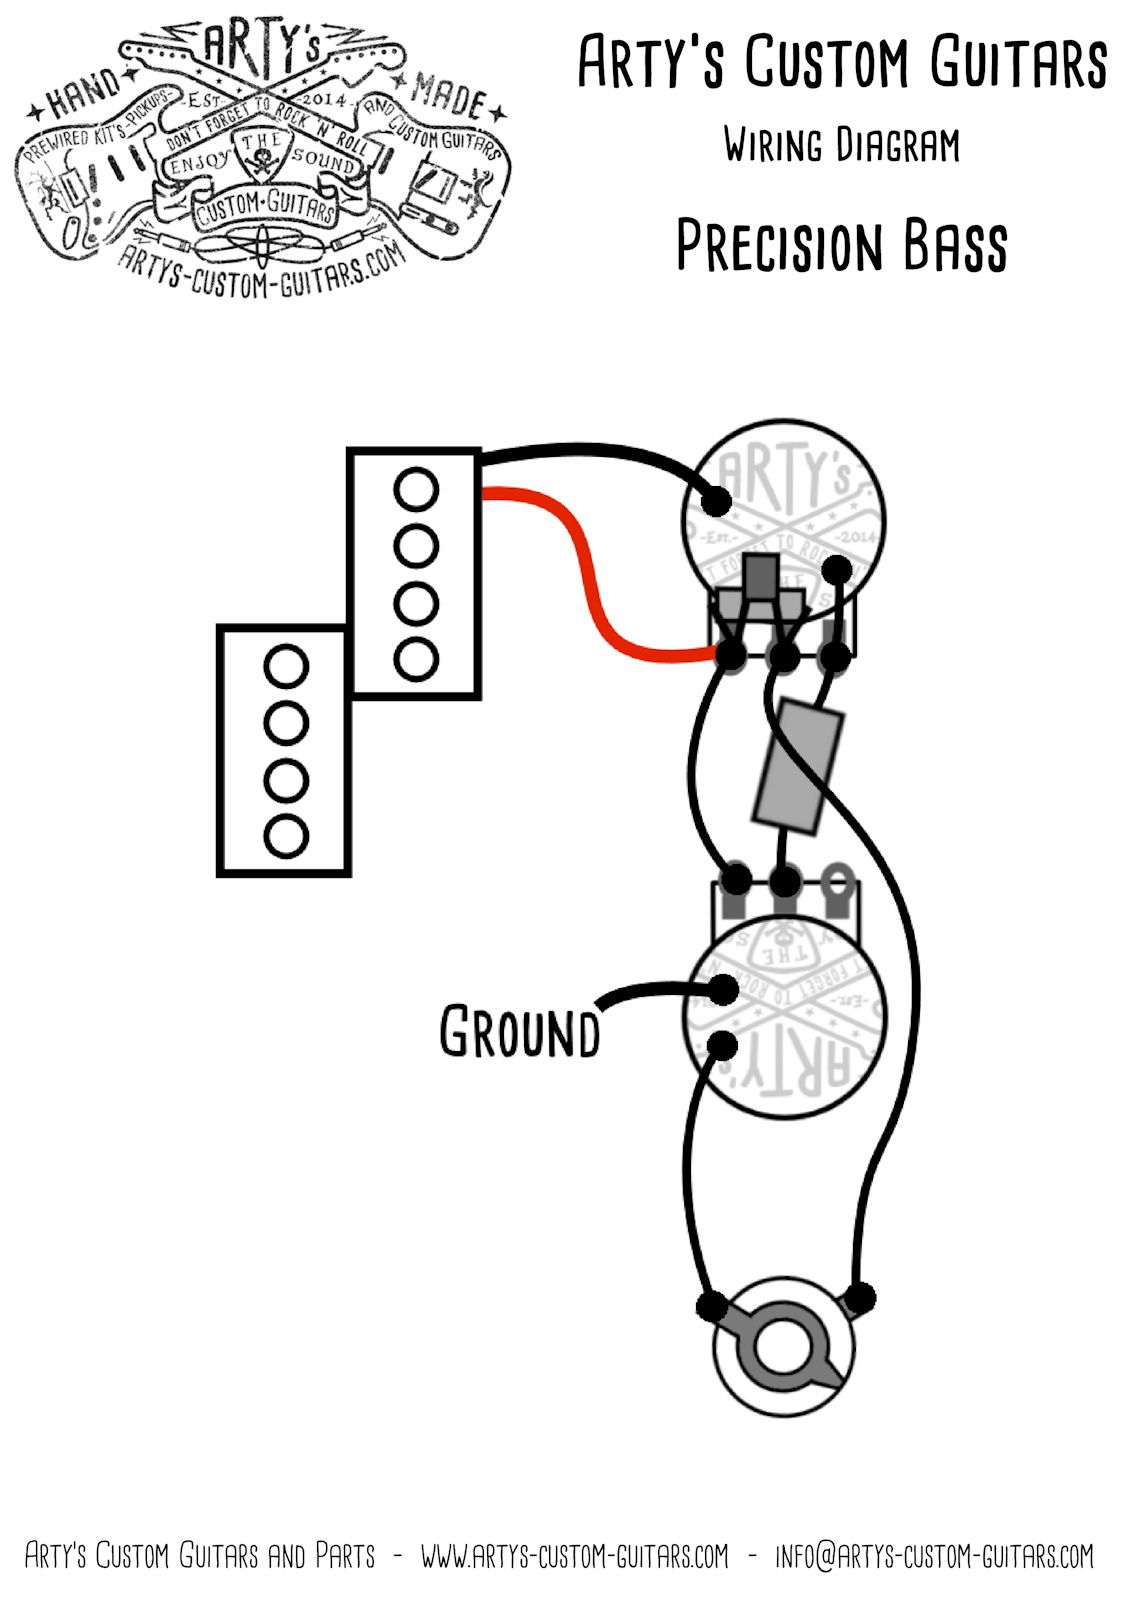 medium resolution of arty s custom guitars vintage wiring prewired kit wiring diagram assembly harness artys precision bass p